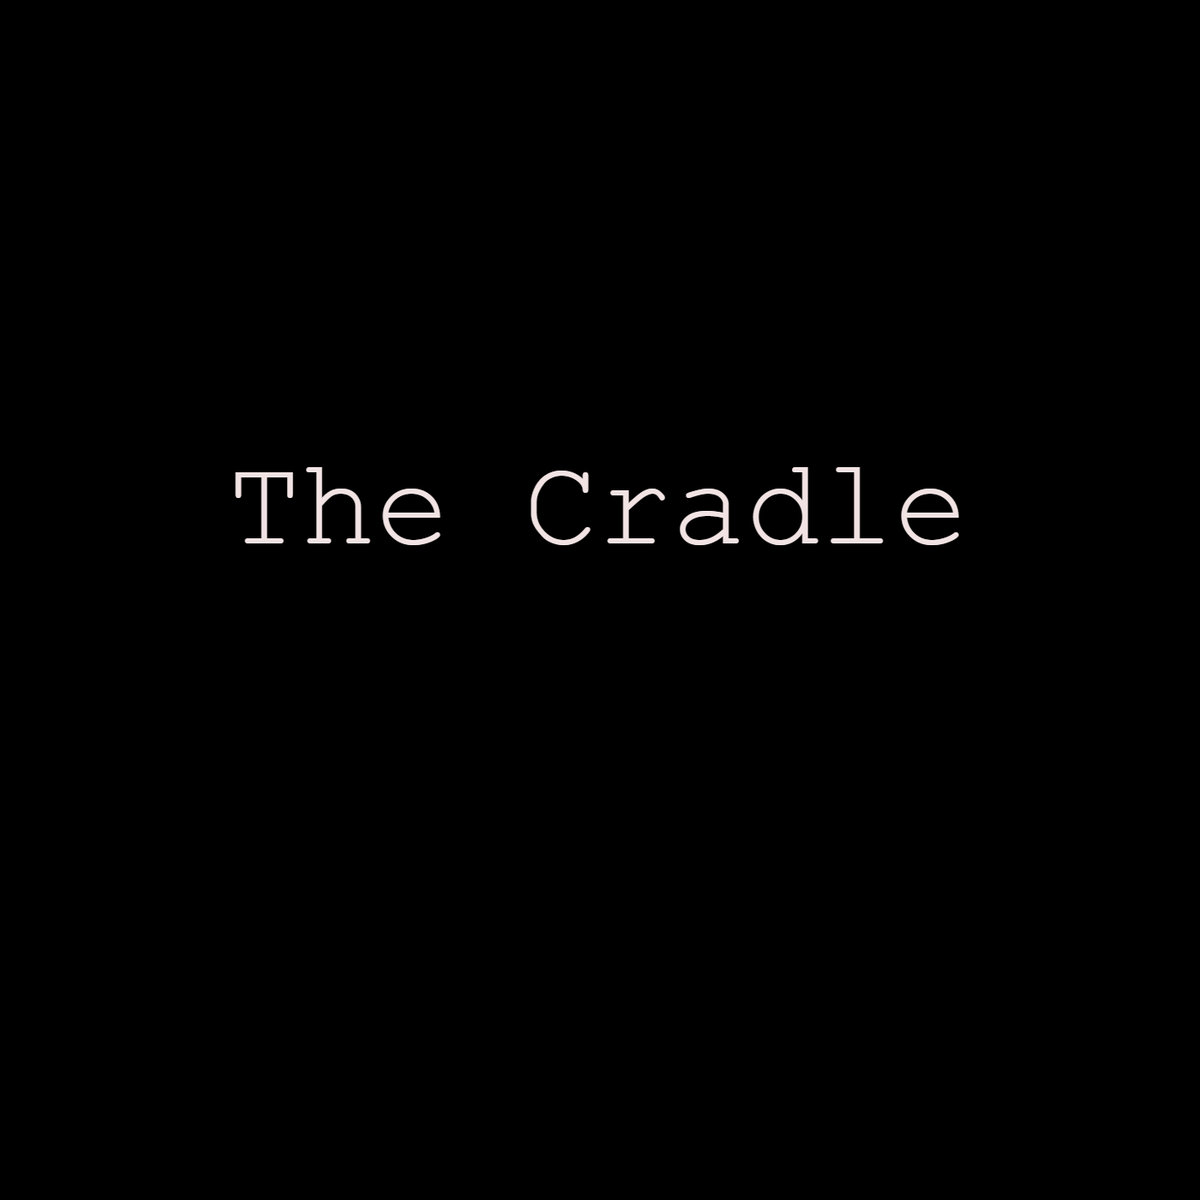 The Cradle by Dylan Rodrigue